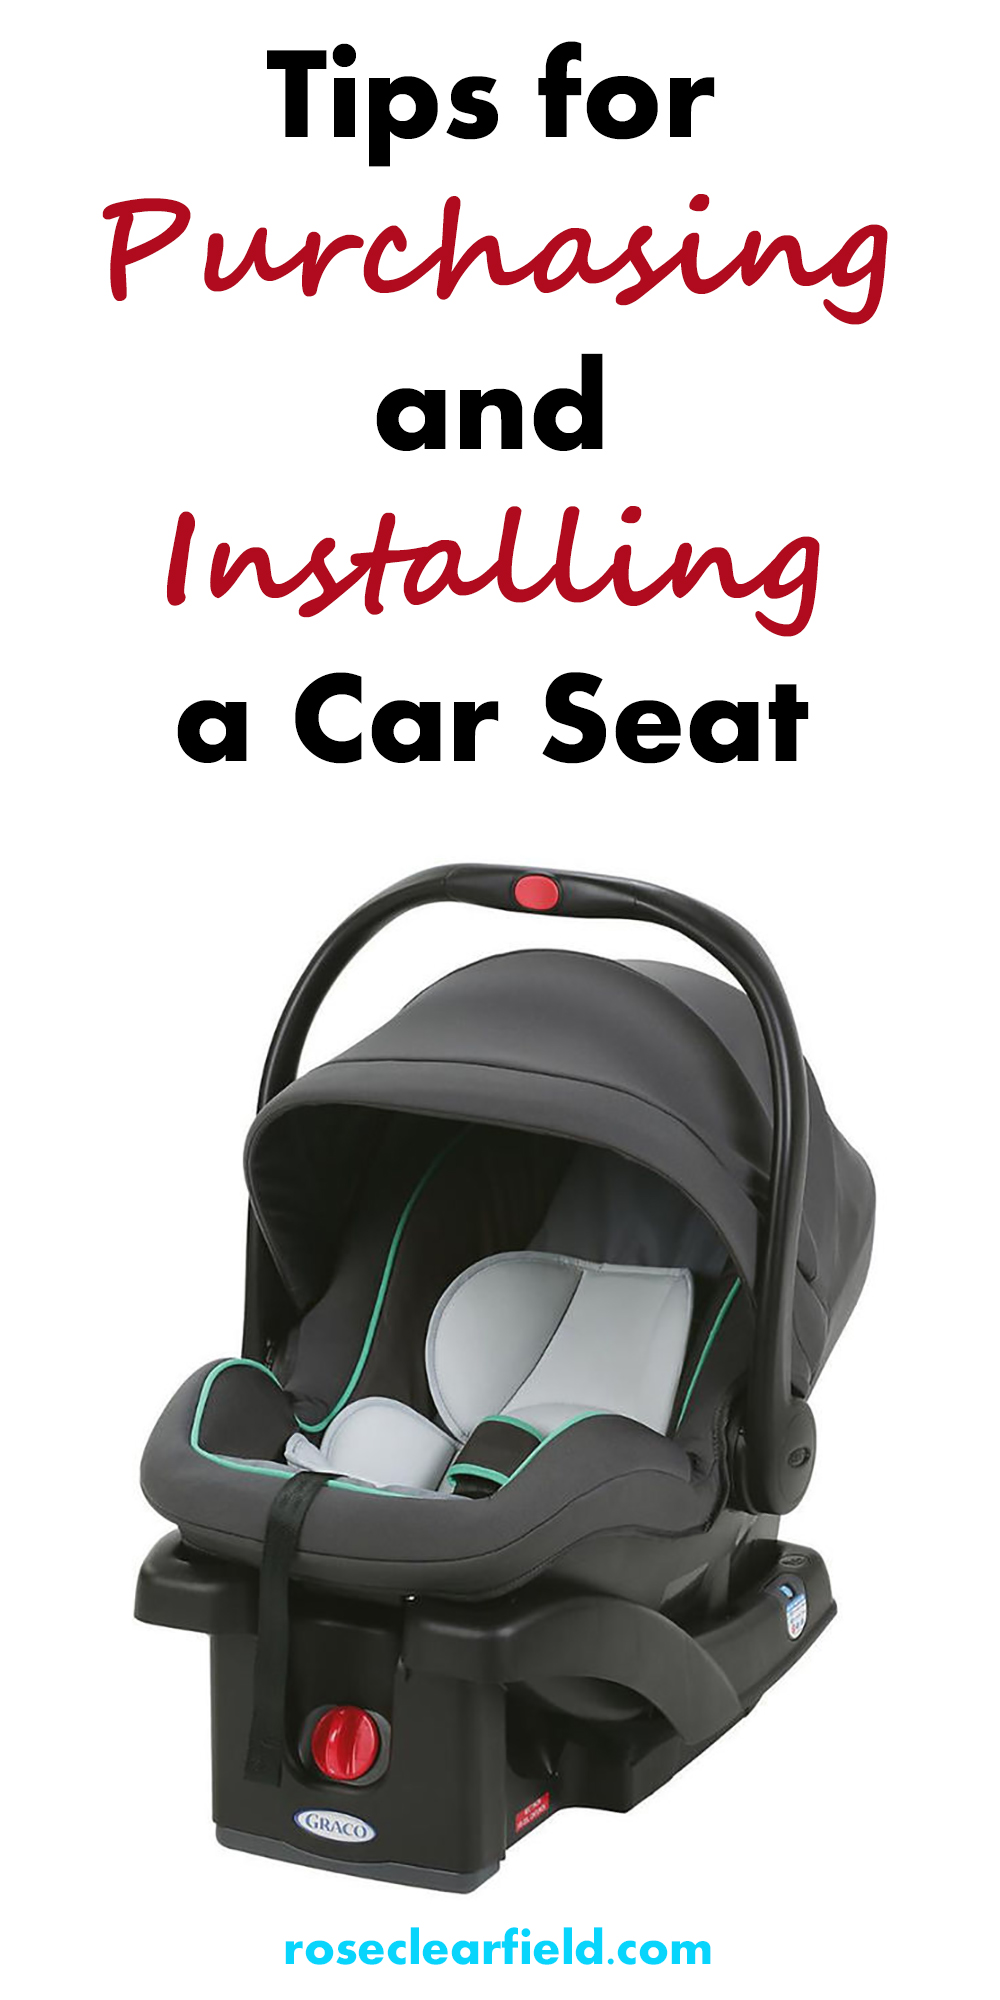 Tips for Purchasing and Installing a Car Seat | http://www.roseclearfield.com